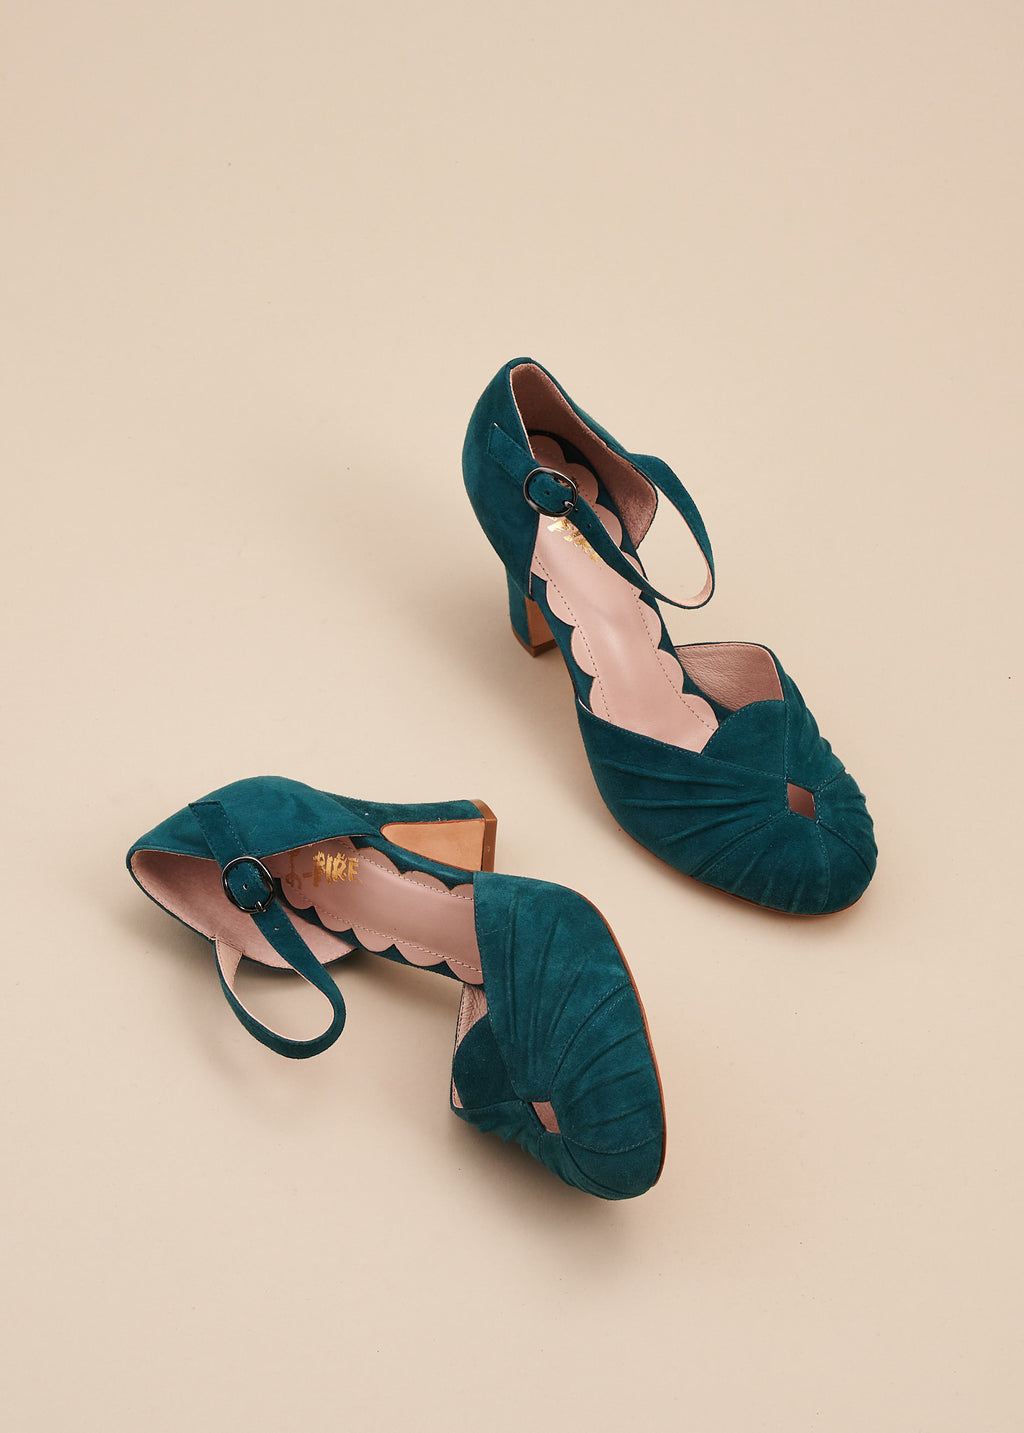 Amber in soft teal suede is a two part, vintage inspired bar shoe by designer Miss L Fire. Amber features an 8cm heel, ruched detail on the toe and an adjustable strap.